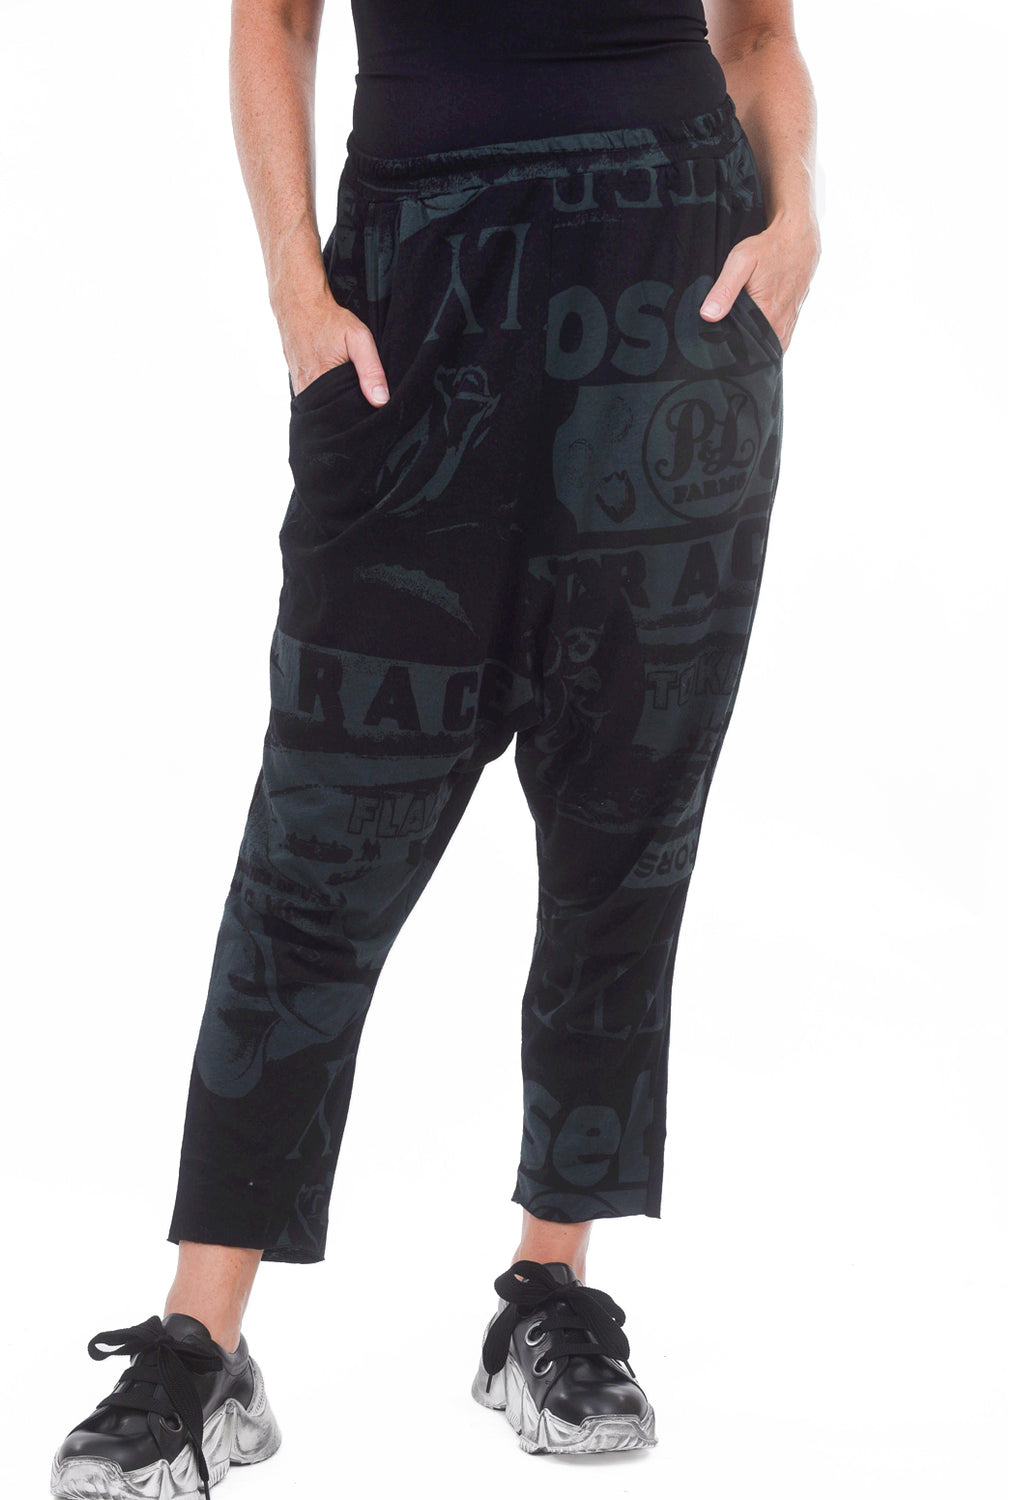 Rundholz Black Label Melange Jersey Pants, Bottle Print